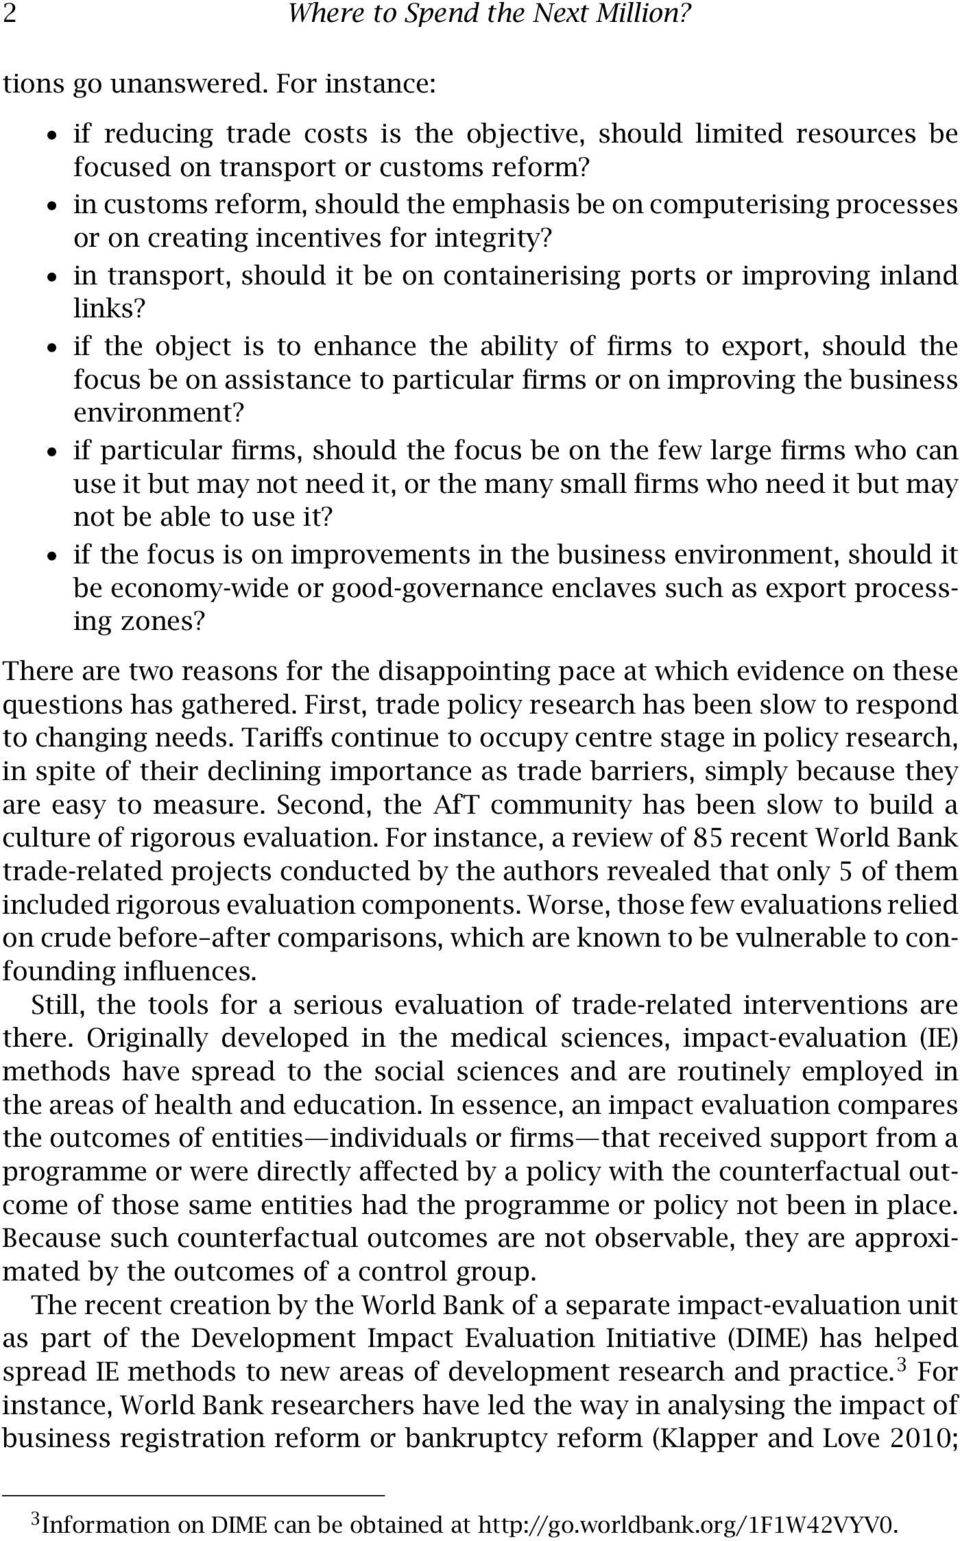 if the object is to enhance the ability of firms to export, should the focus be on assistance to particular firms or on improving the business environment?